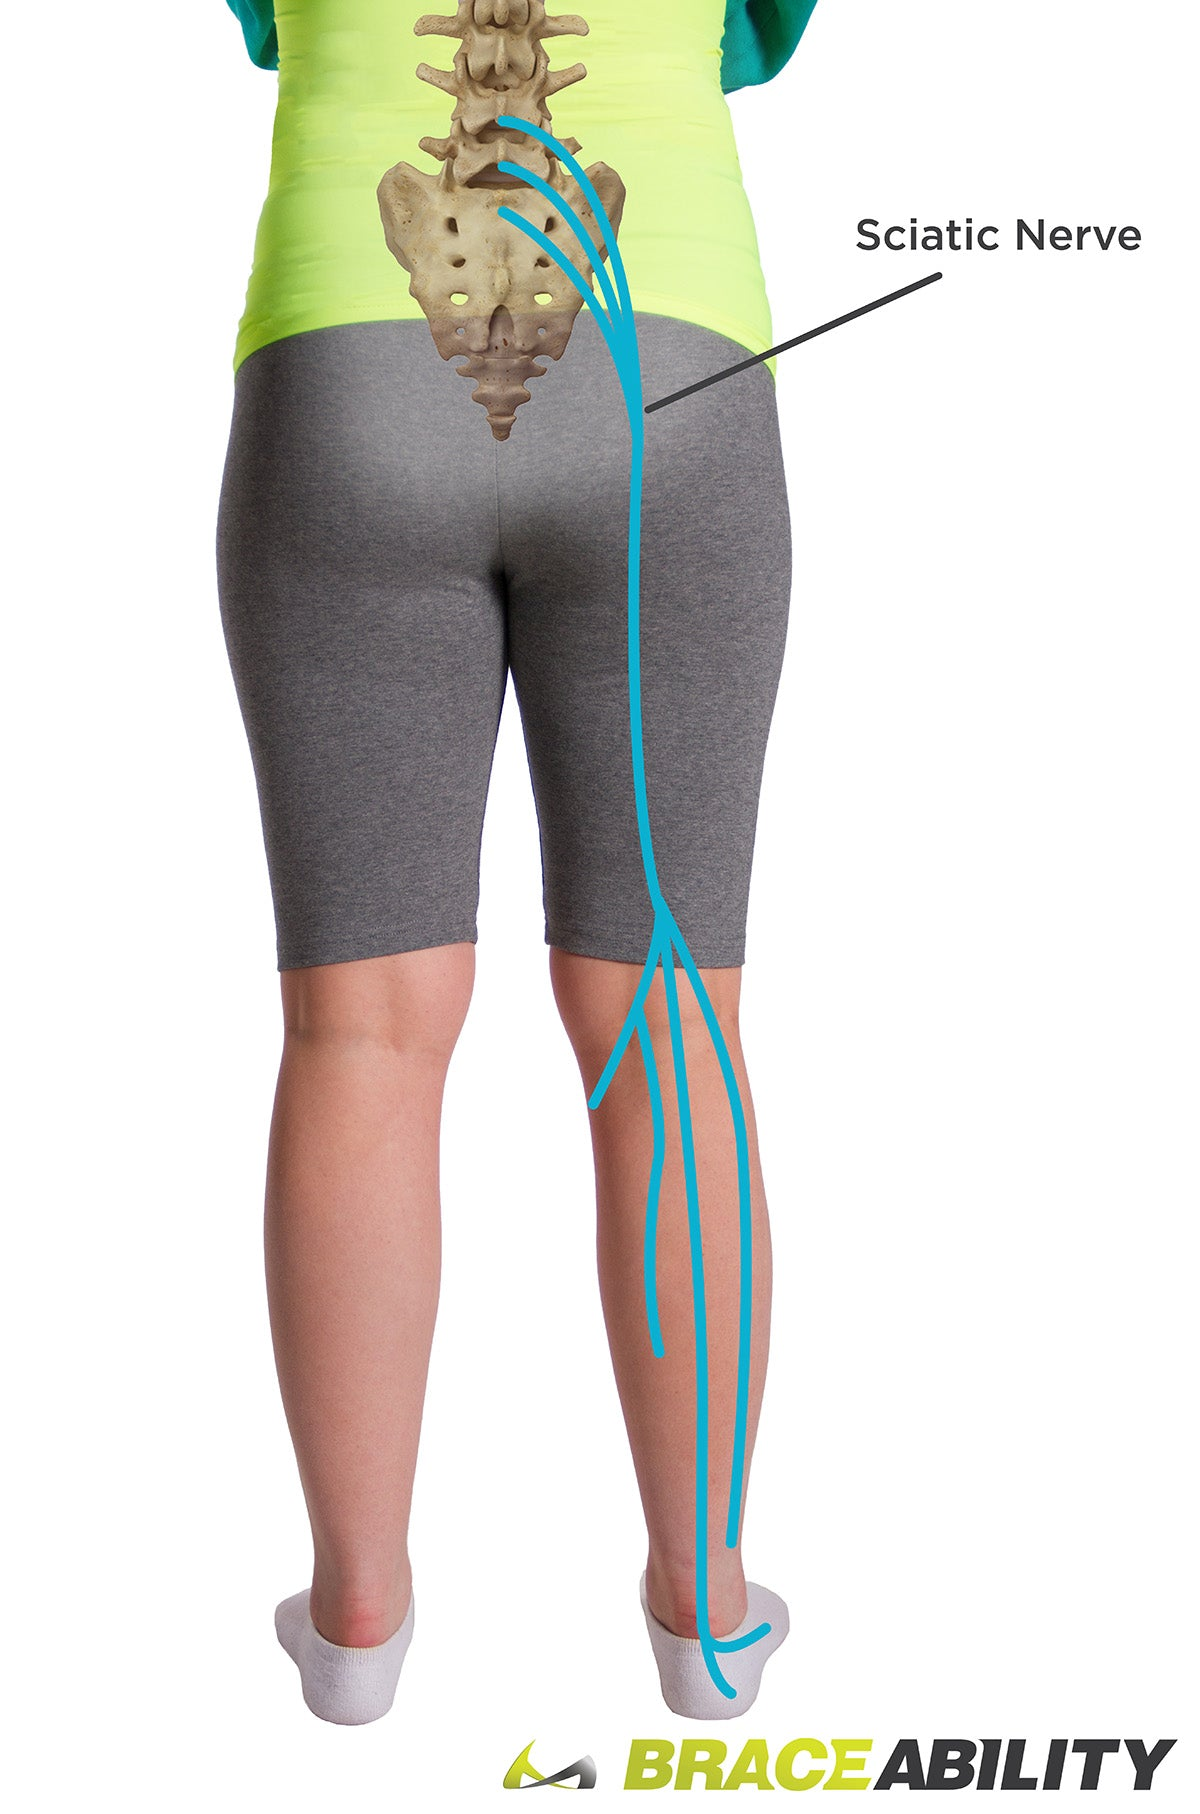 Where your sciatic nerve runs from your spine to your leg causing sciatica